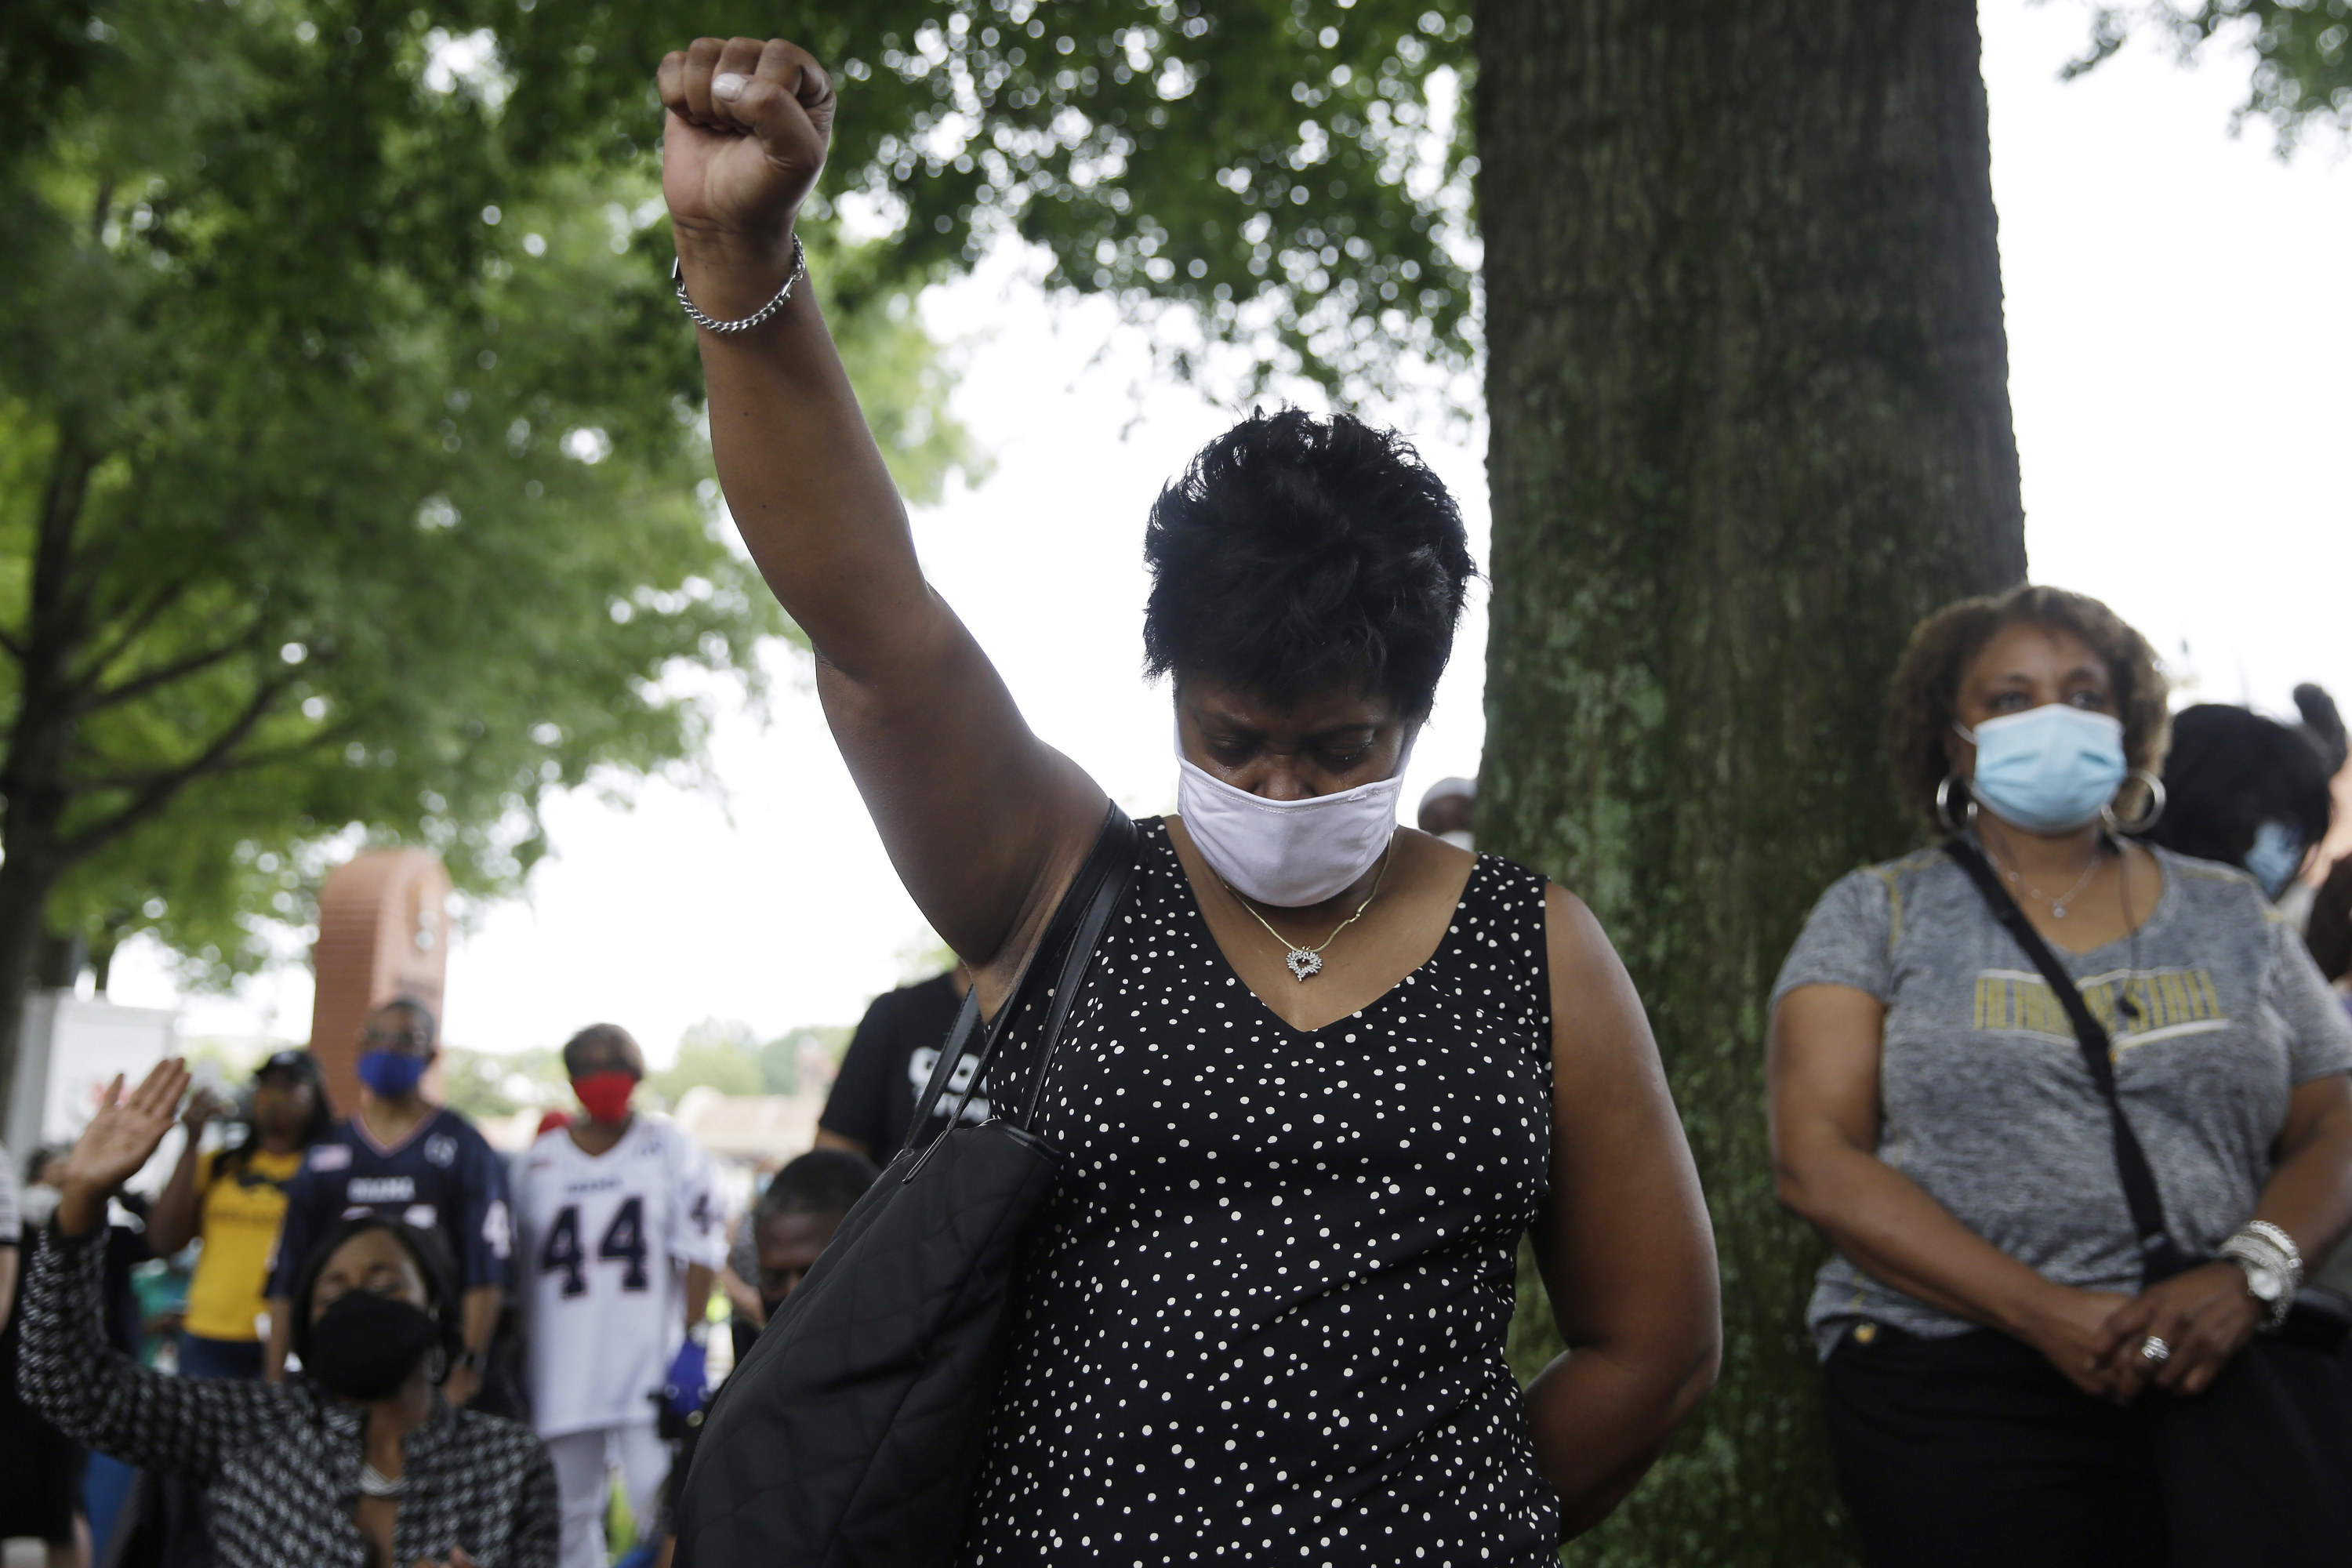 A black woman wearing a black dress and white mask looks to the ground and raises her fist